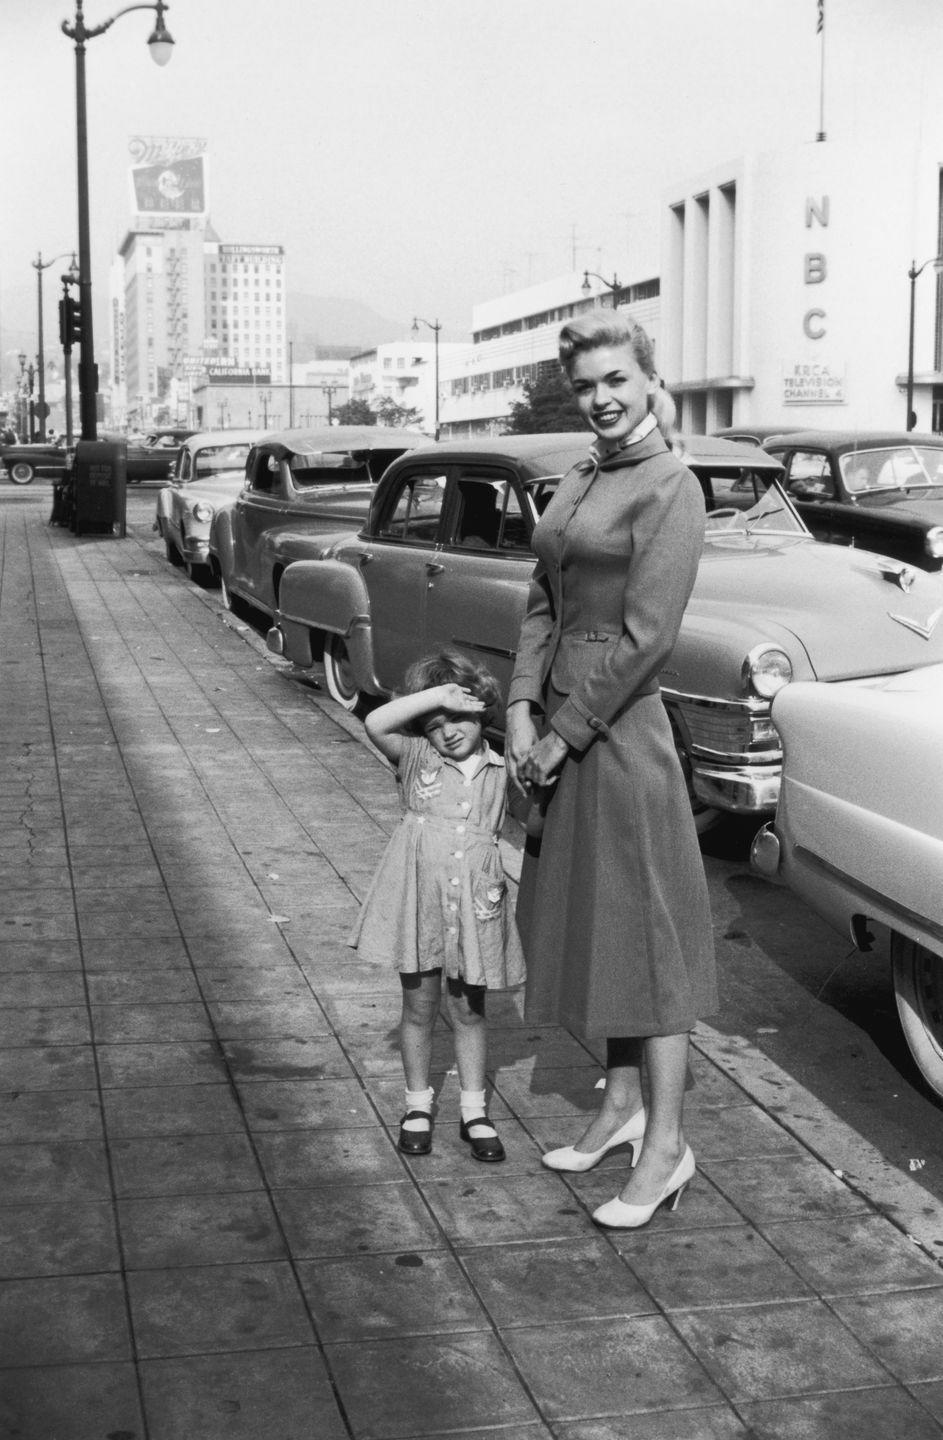 <p>Unfortunately, Jayne's husband did not share the same public aspirations as the budding star, and in 1955 the two were granted a divorce. Paul returned to Dallas, Texas and the couple's young daughter remained in Los Angeles with her mother. </p>